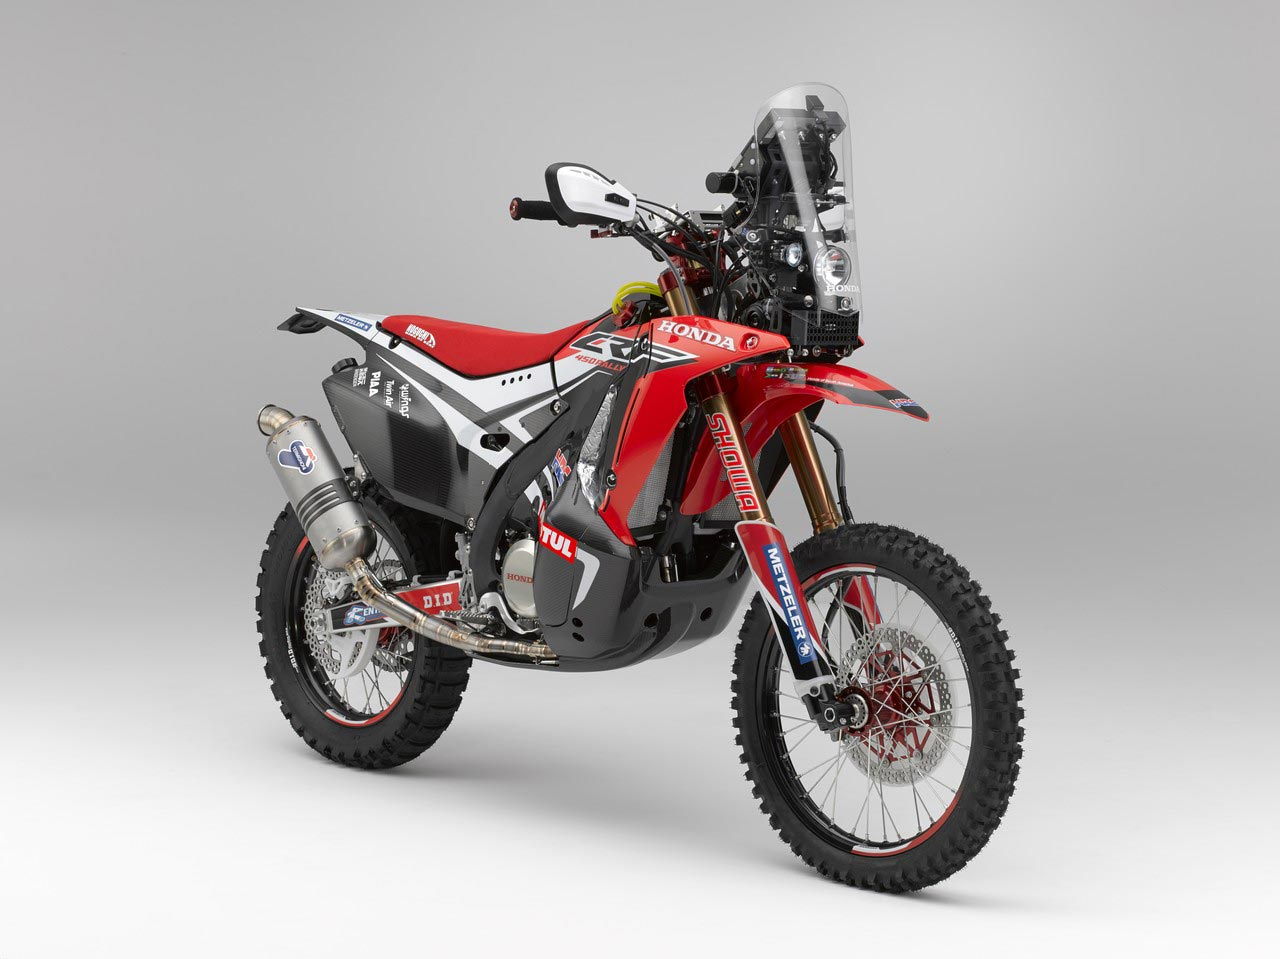 Hrc Shows Off The 2014 Honda Crf450 Rally Race Bike